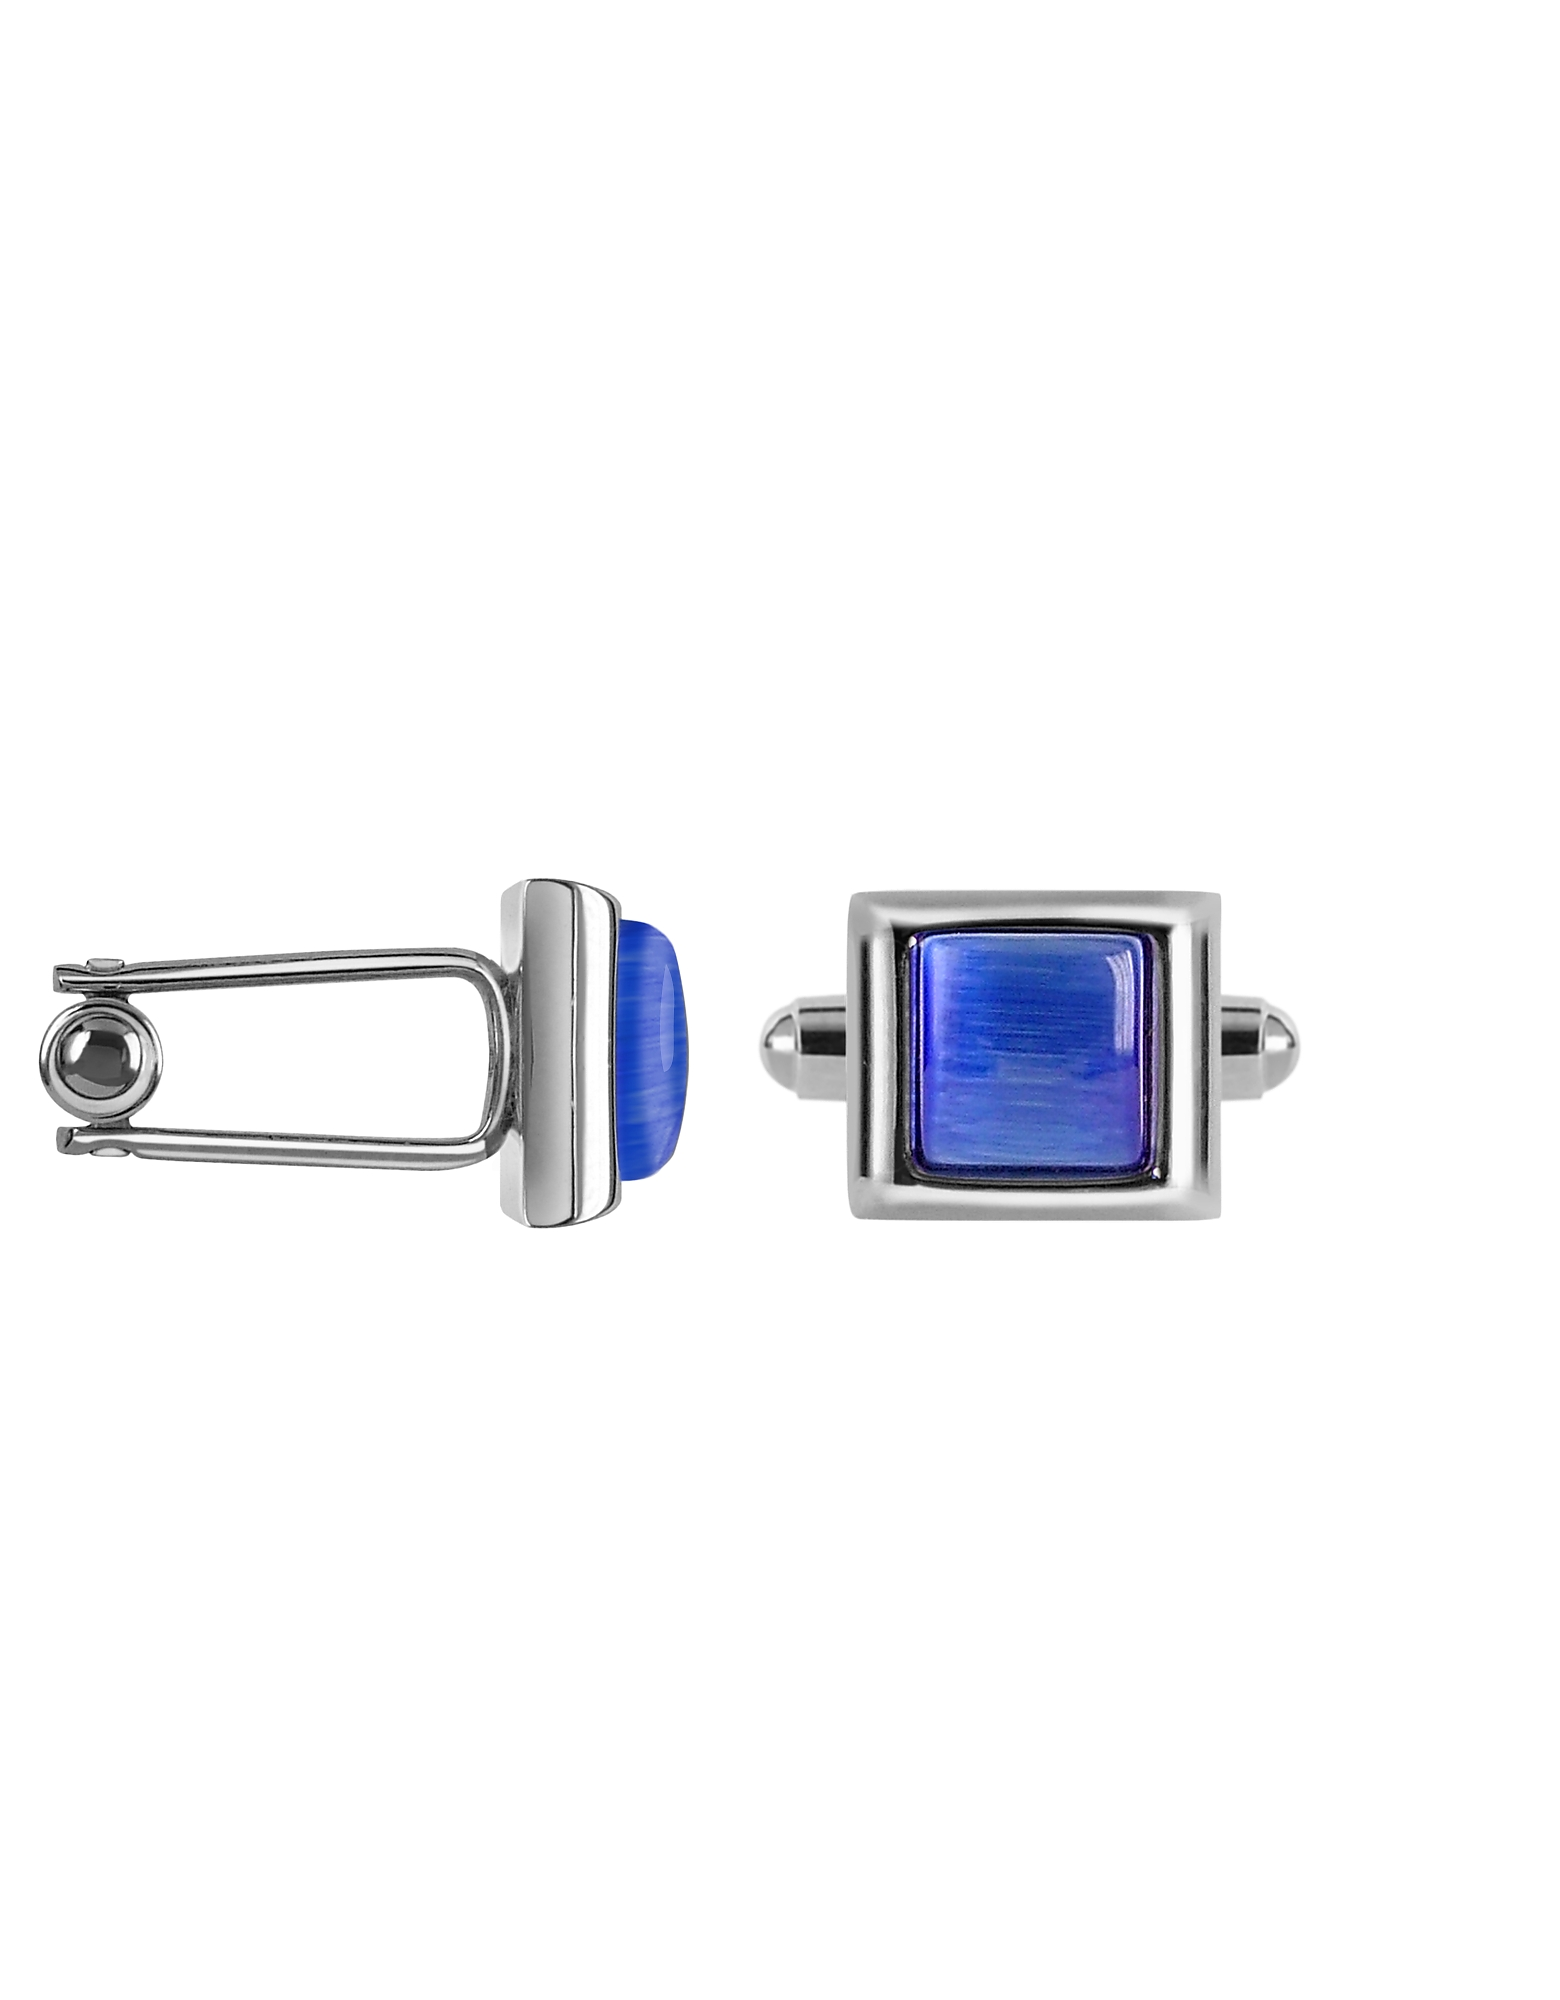 Forzieri Cufflinks, Cat's eye - Blue Silver Plated Cuff links